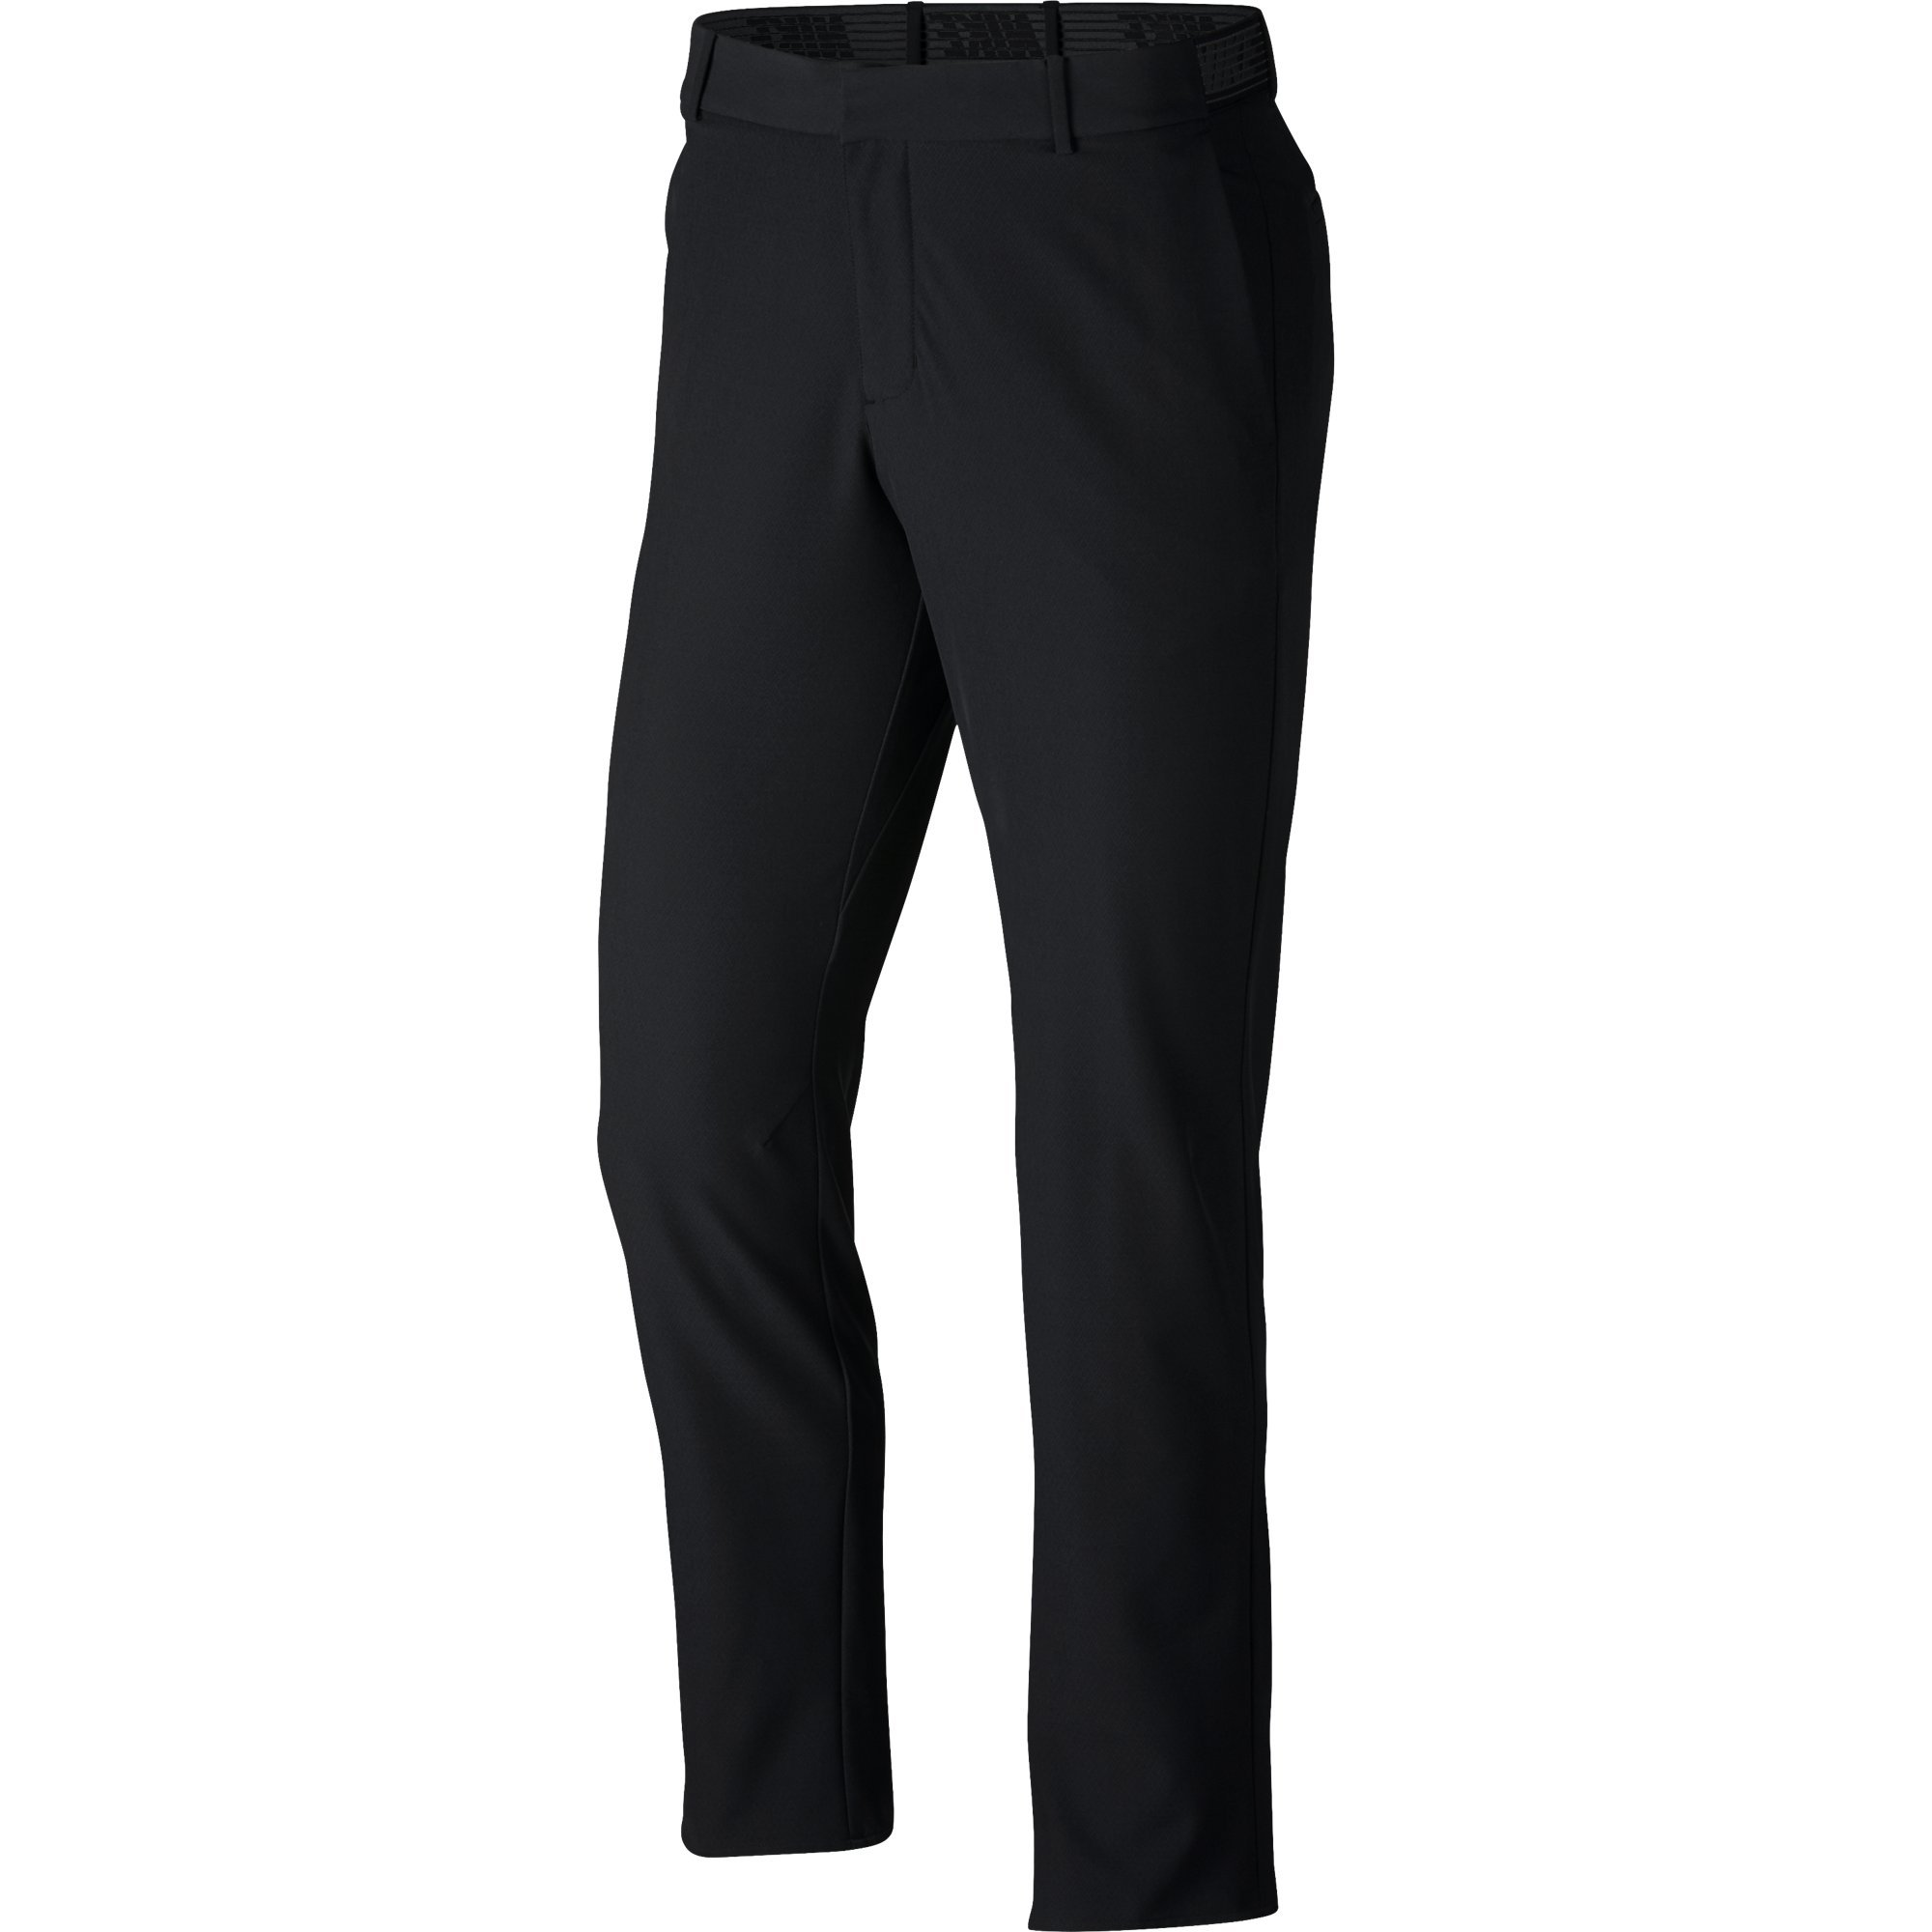 NIKE Men's Flex Slim Golf Pants, Black/Black, Size 30/30